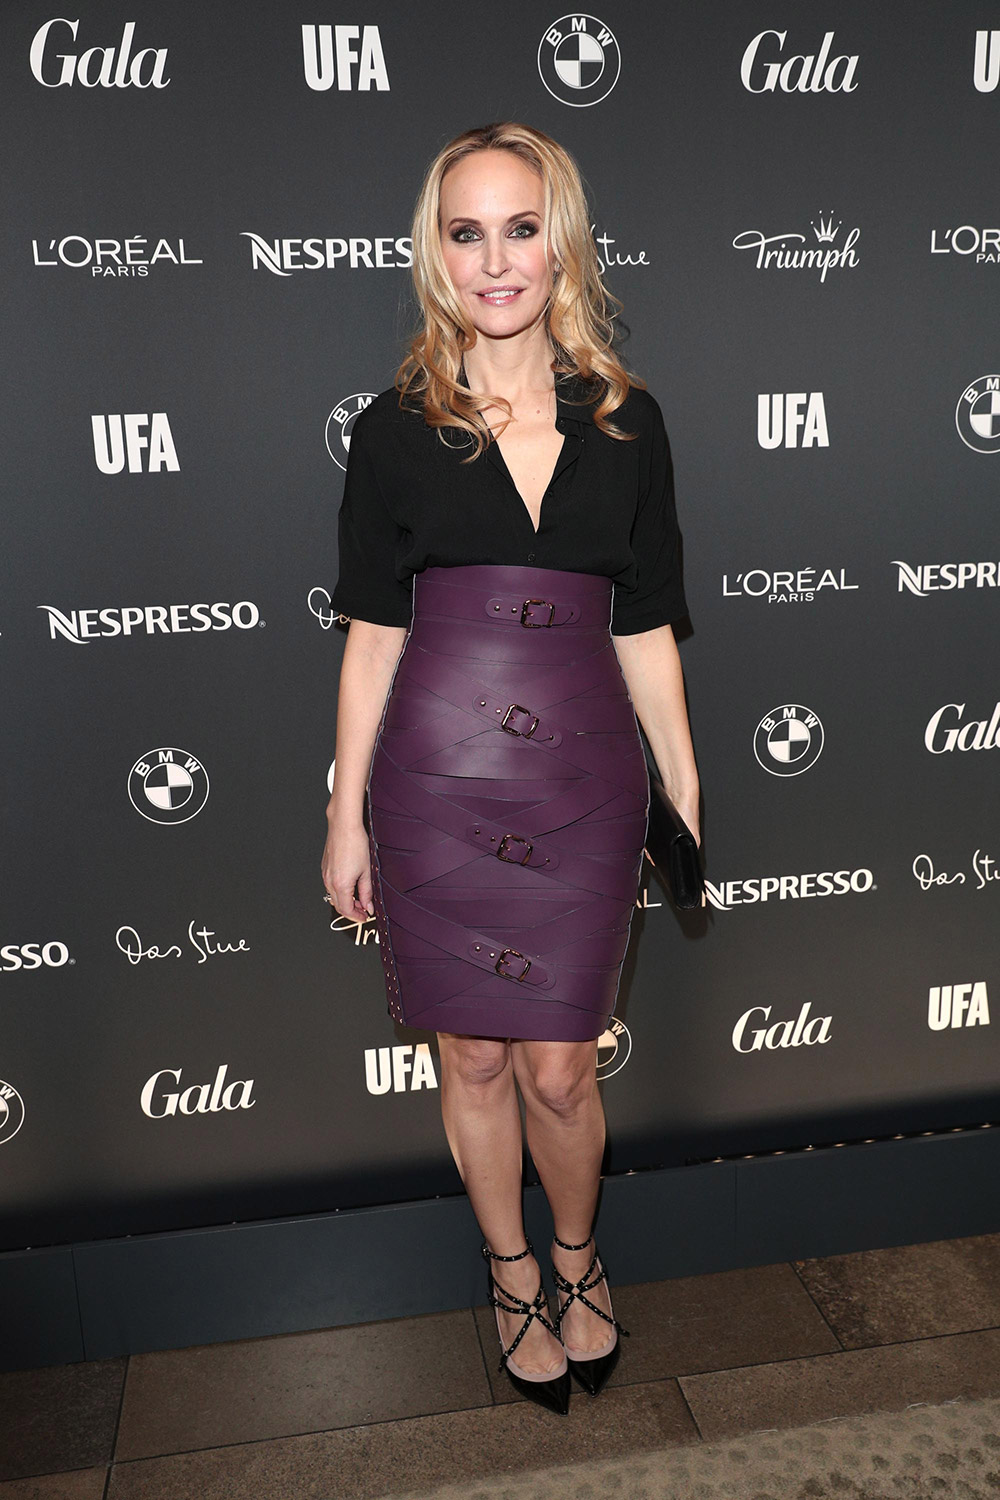 Anne Meyer-Minnemann attends Opening Night By GALA & UFA